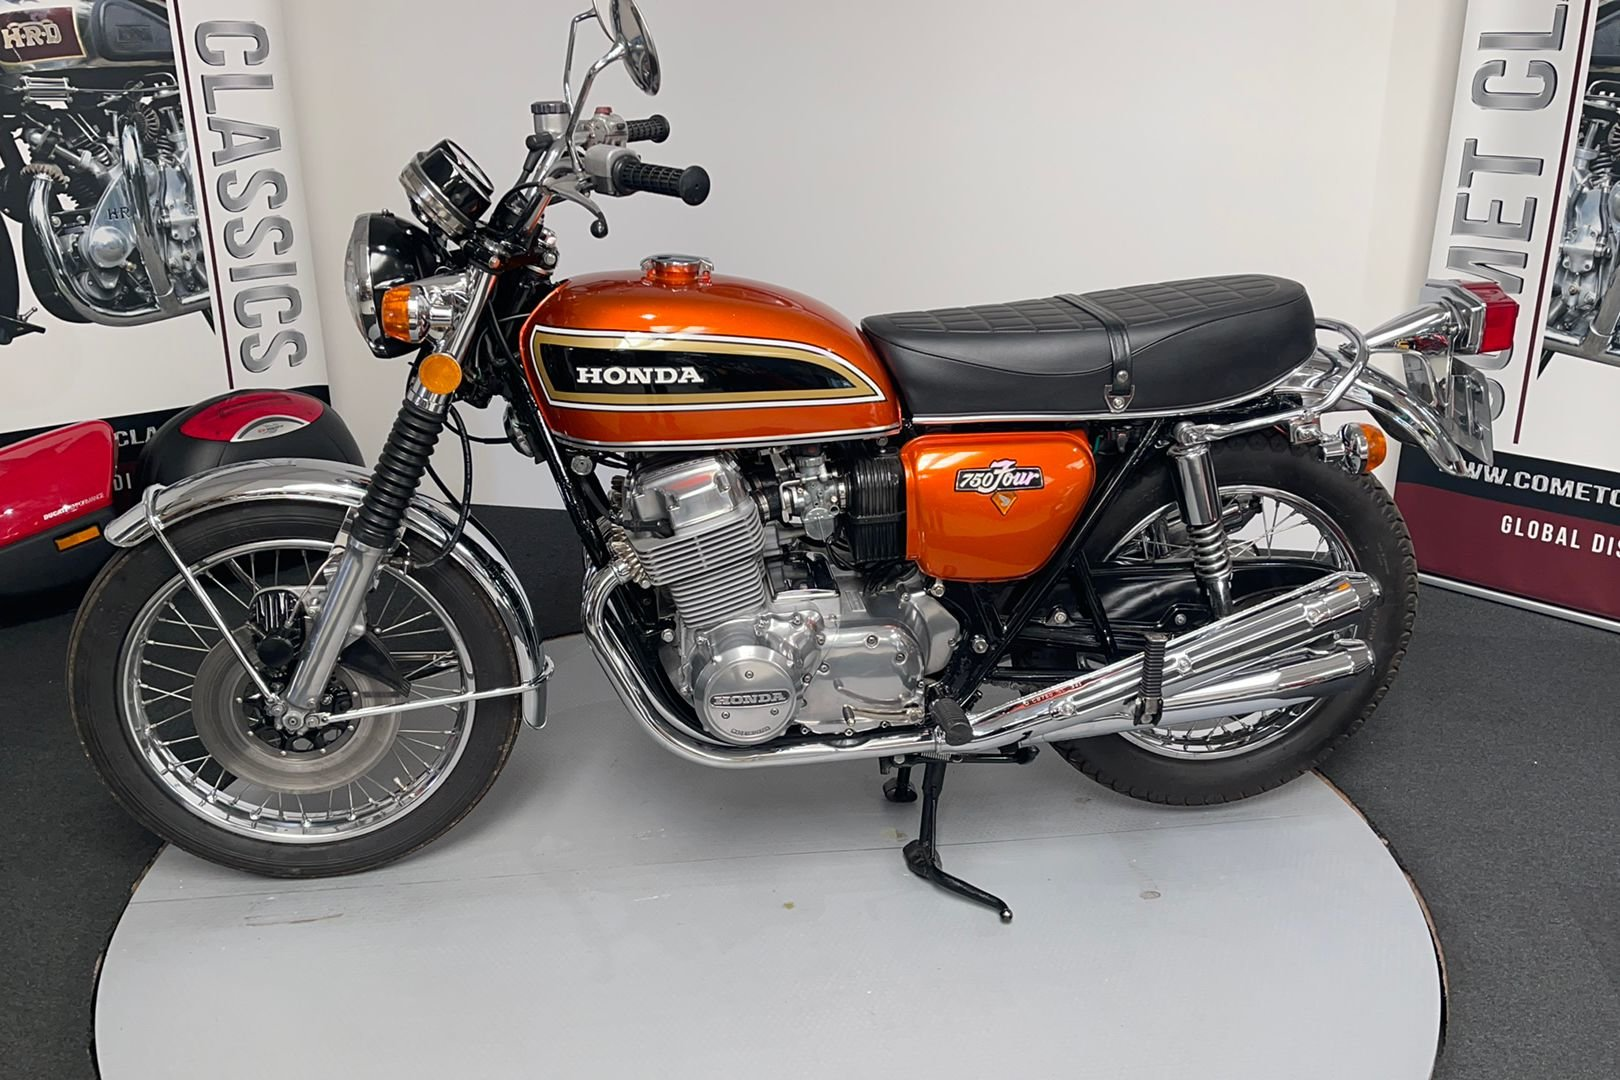 Honda 7504 1973 For Sale (picture 6 of 10)